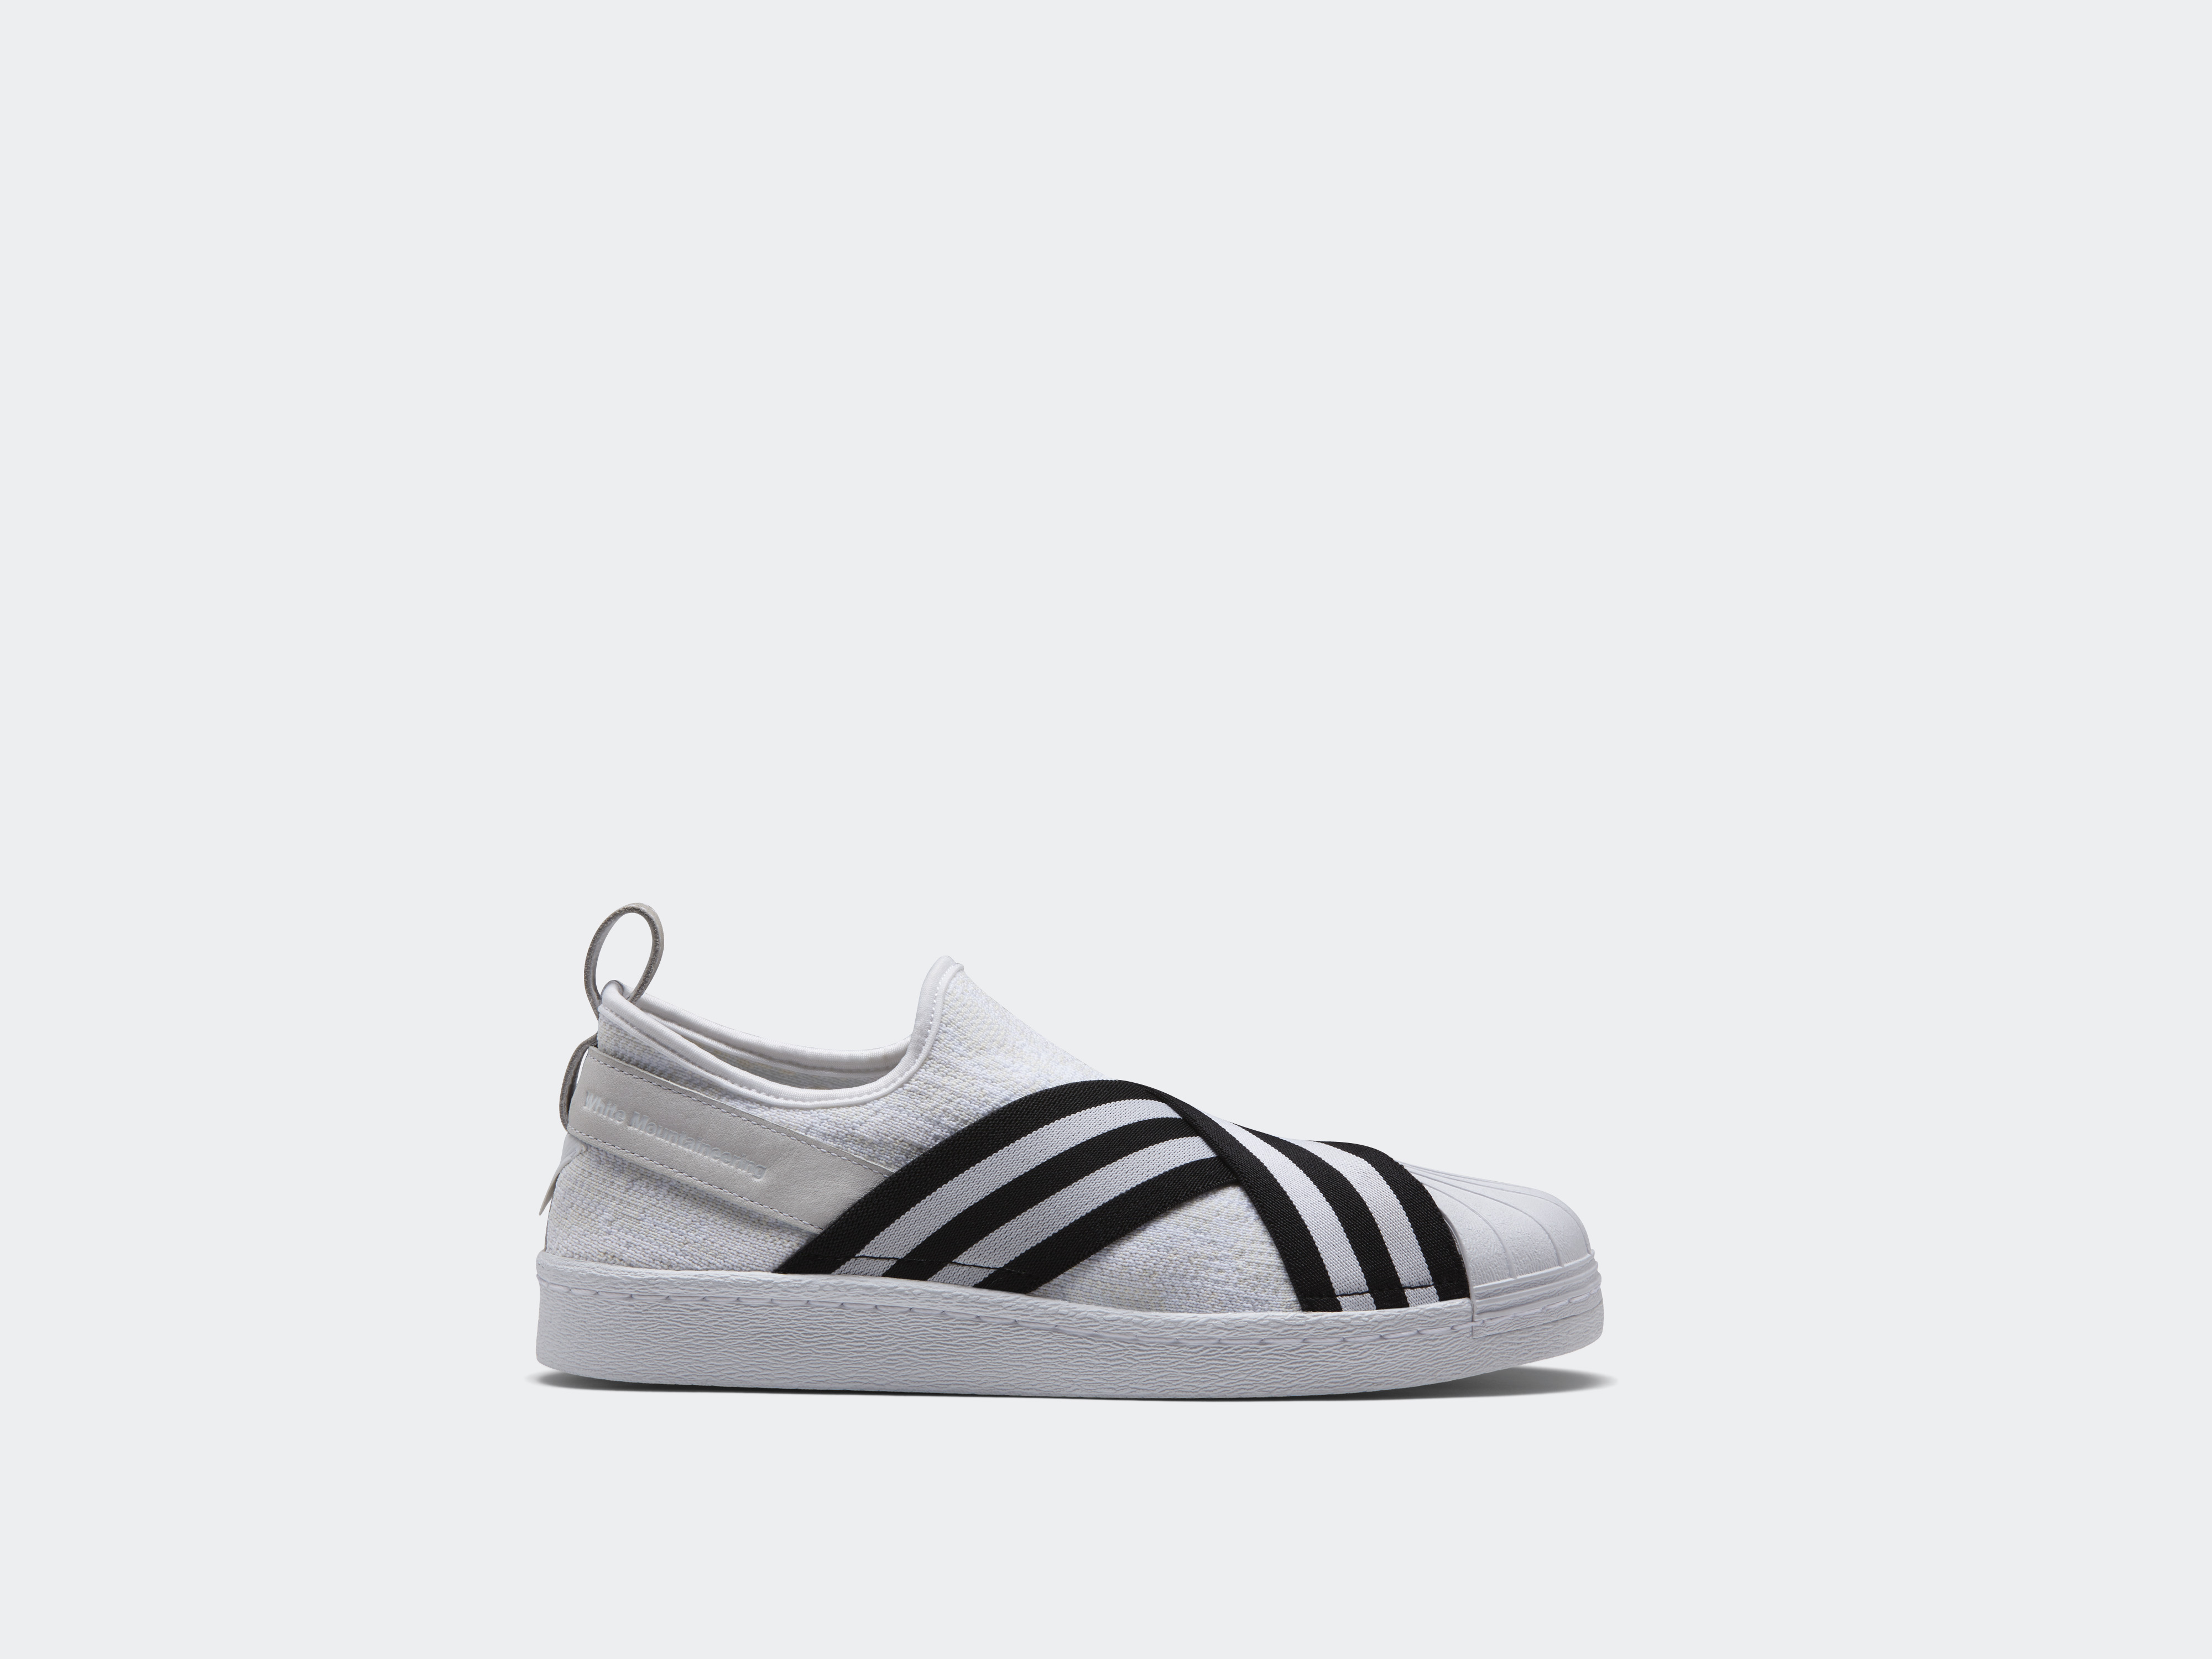 "White Mountaineering x adidas Superstar Slip-On ""Injection"" Pack"